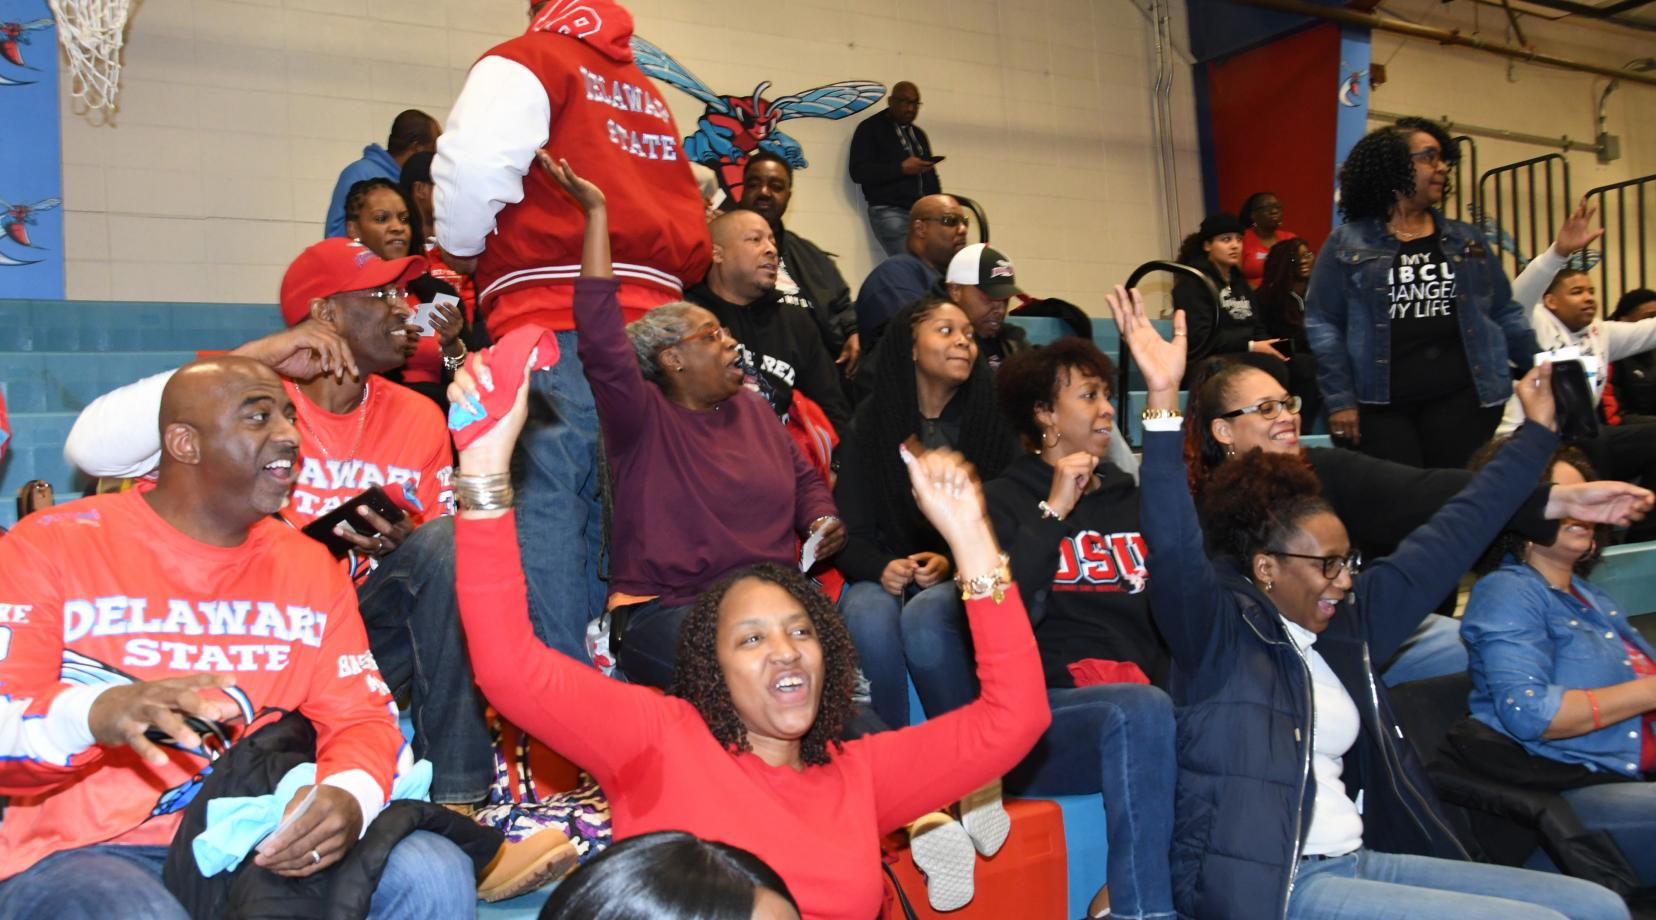 Delaware State University grads had a Hornet of a good time during the Alumni Day event at the UMES vs. DSU basketball doubleheader at Memorial Hall